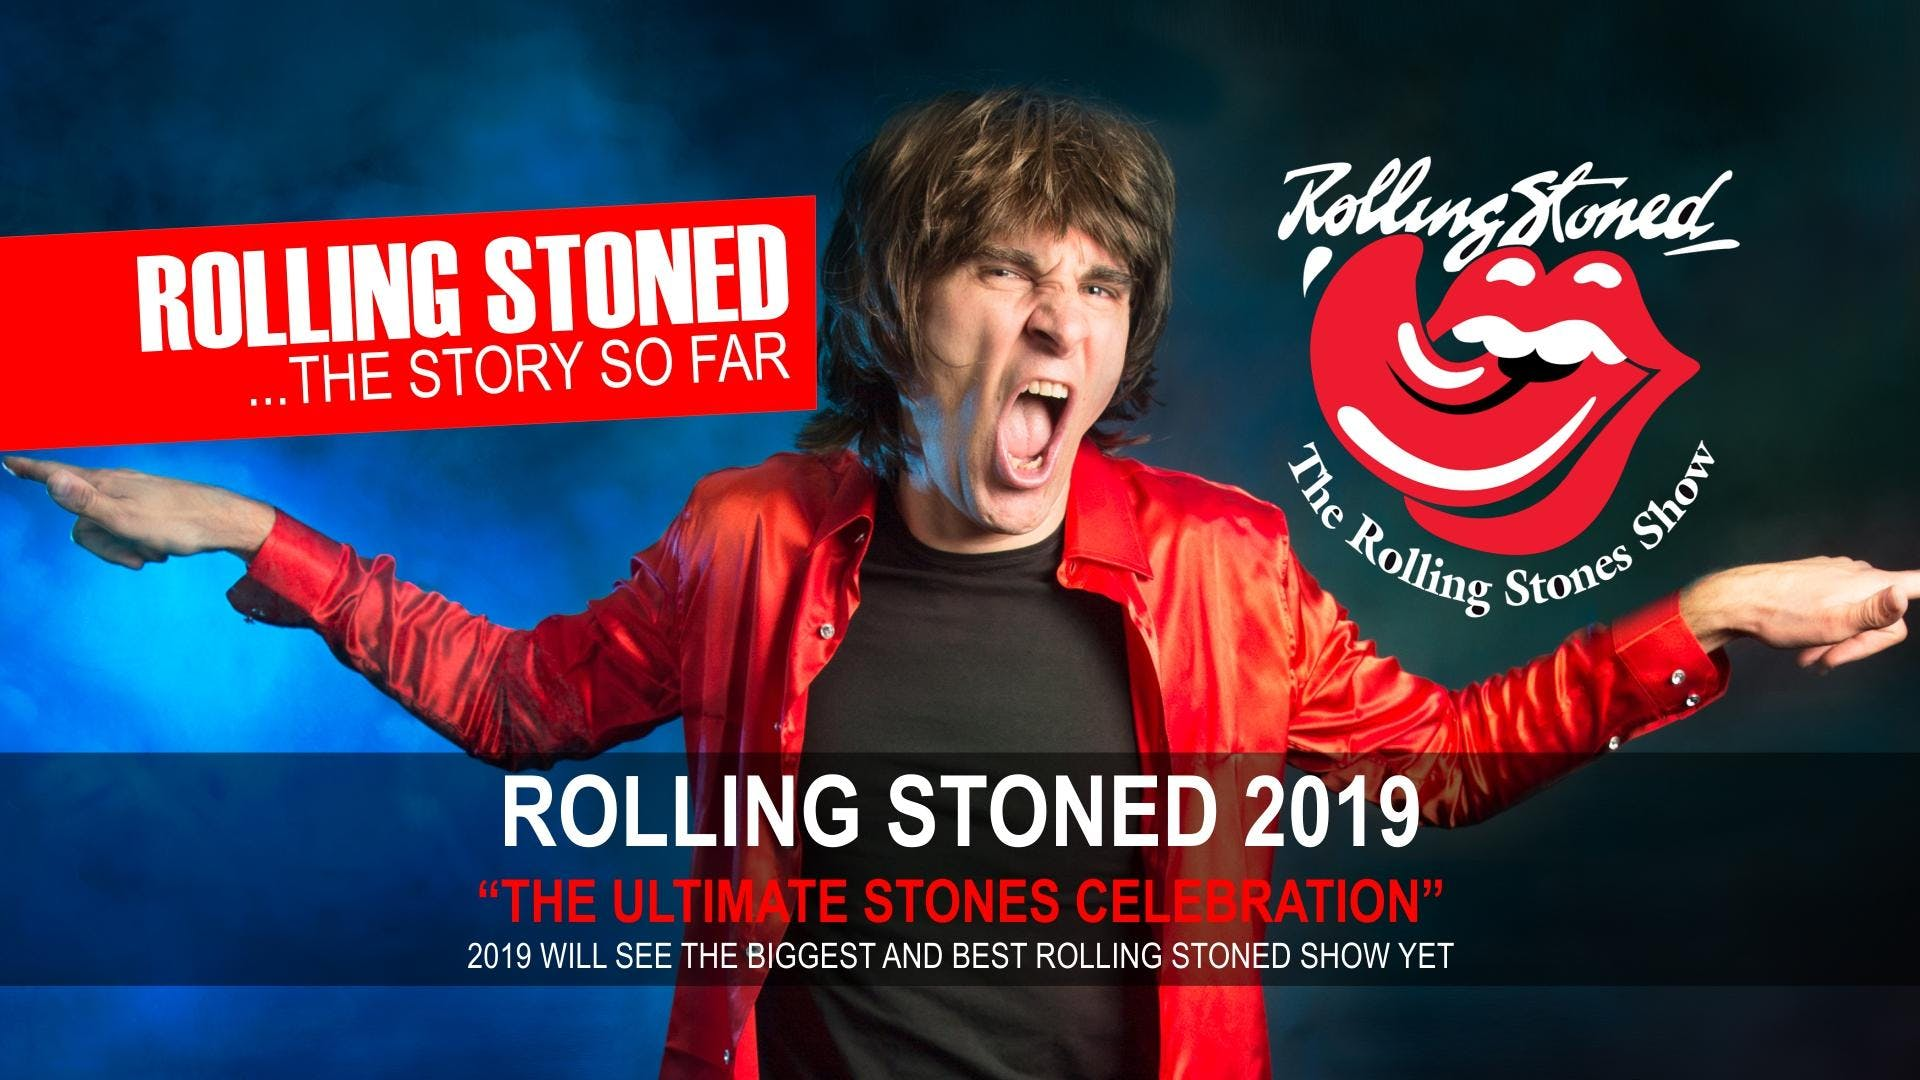 The Rolling Stoned Show live at Gasparos